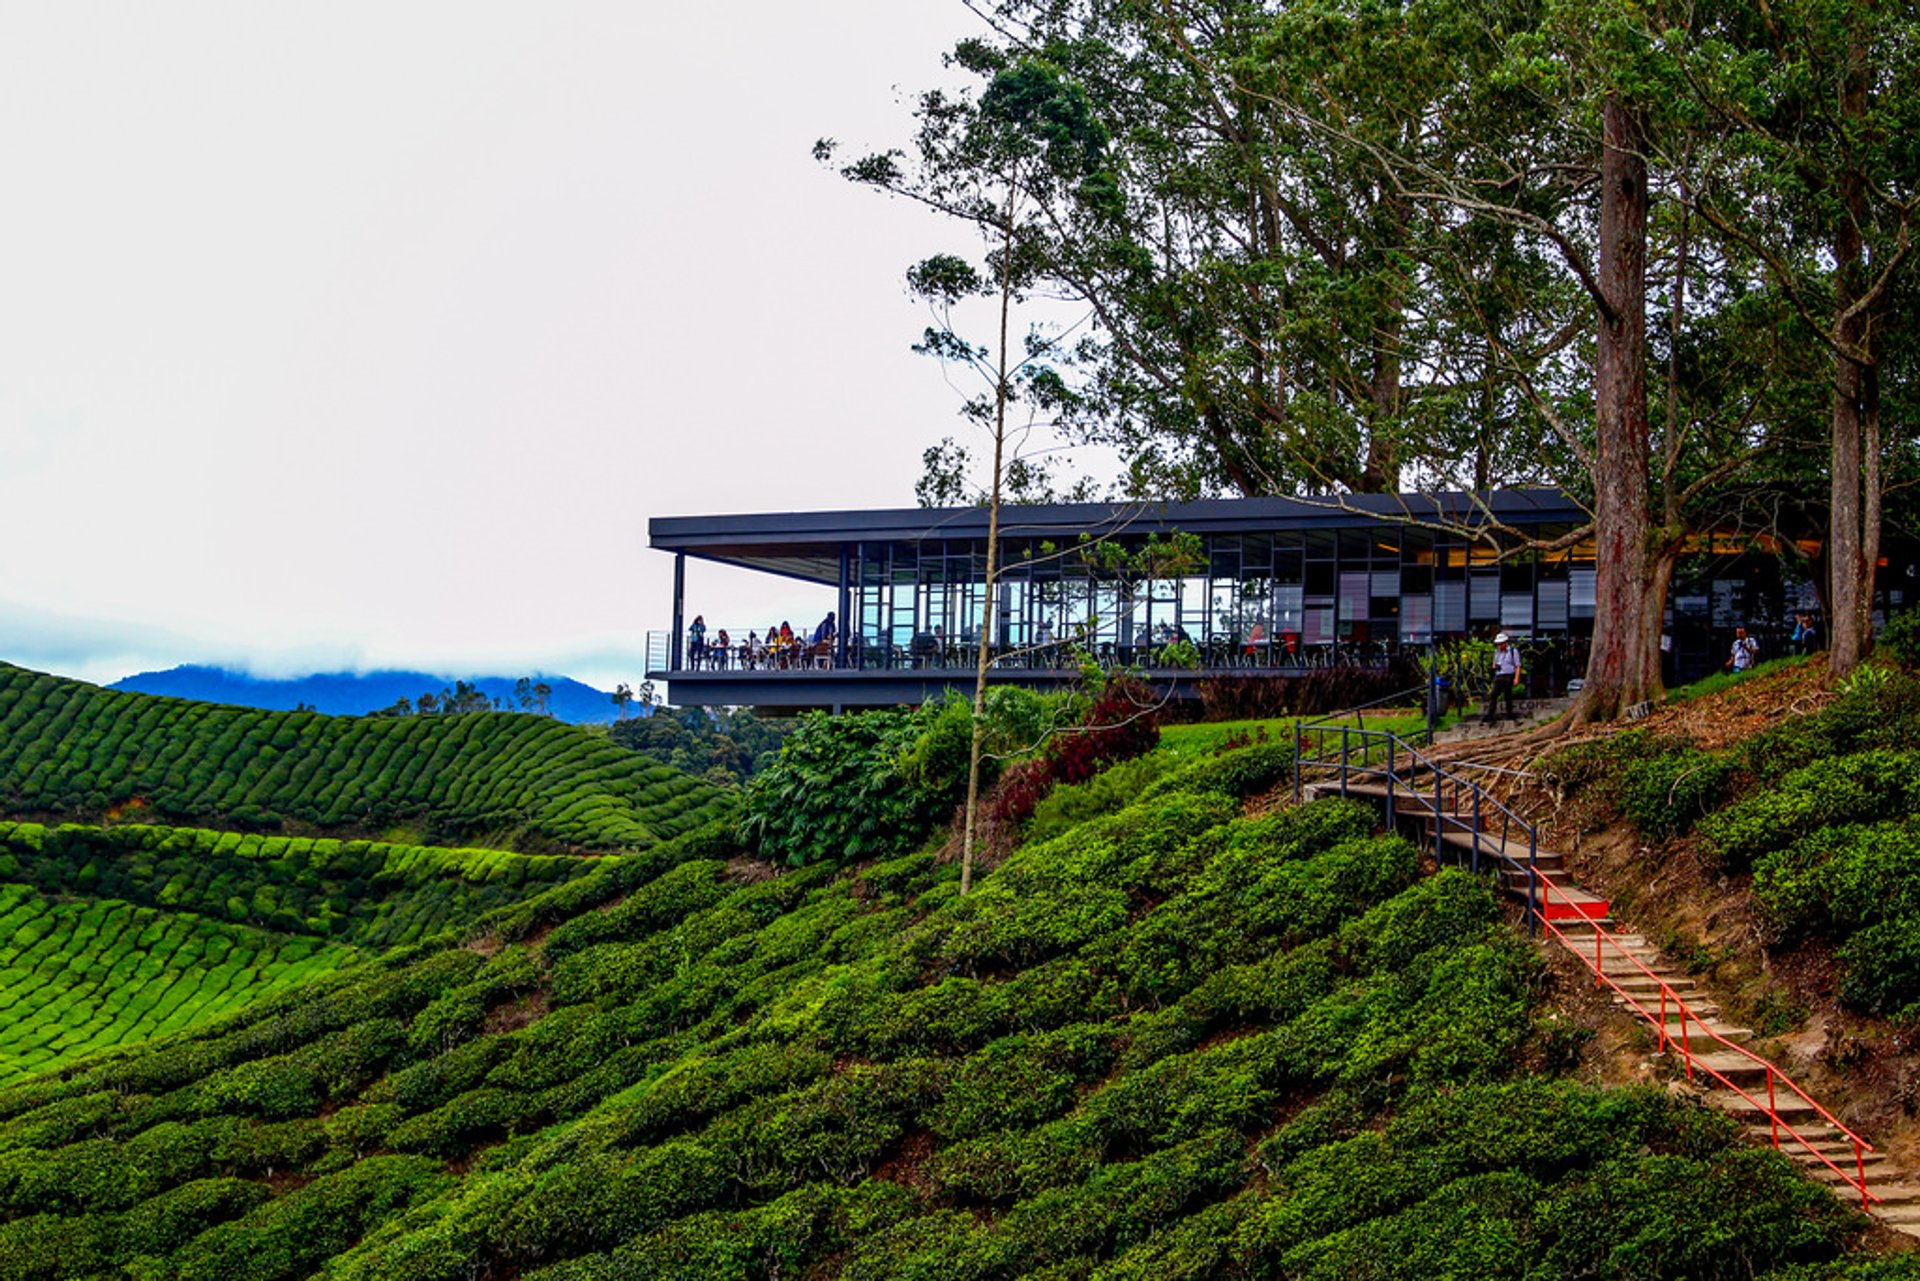 BOH tea plantation viewing Deck, Cameron Highlands 2020